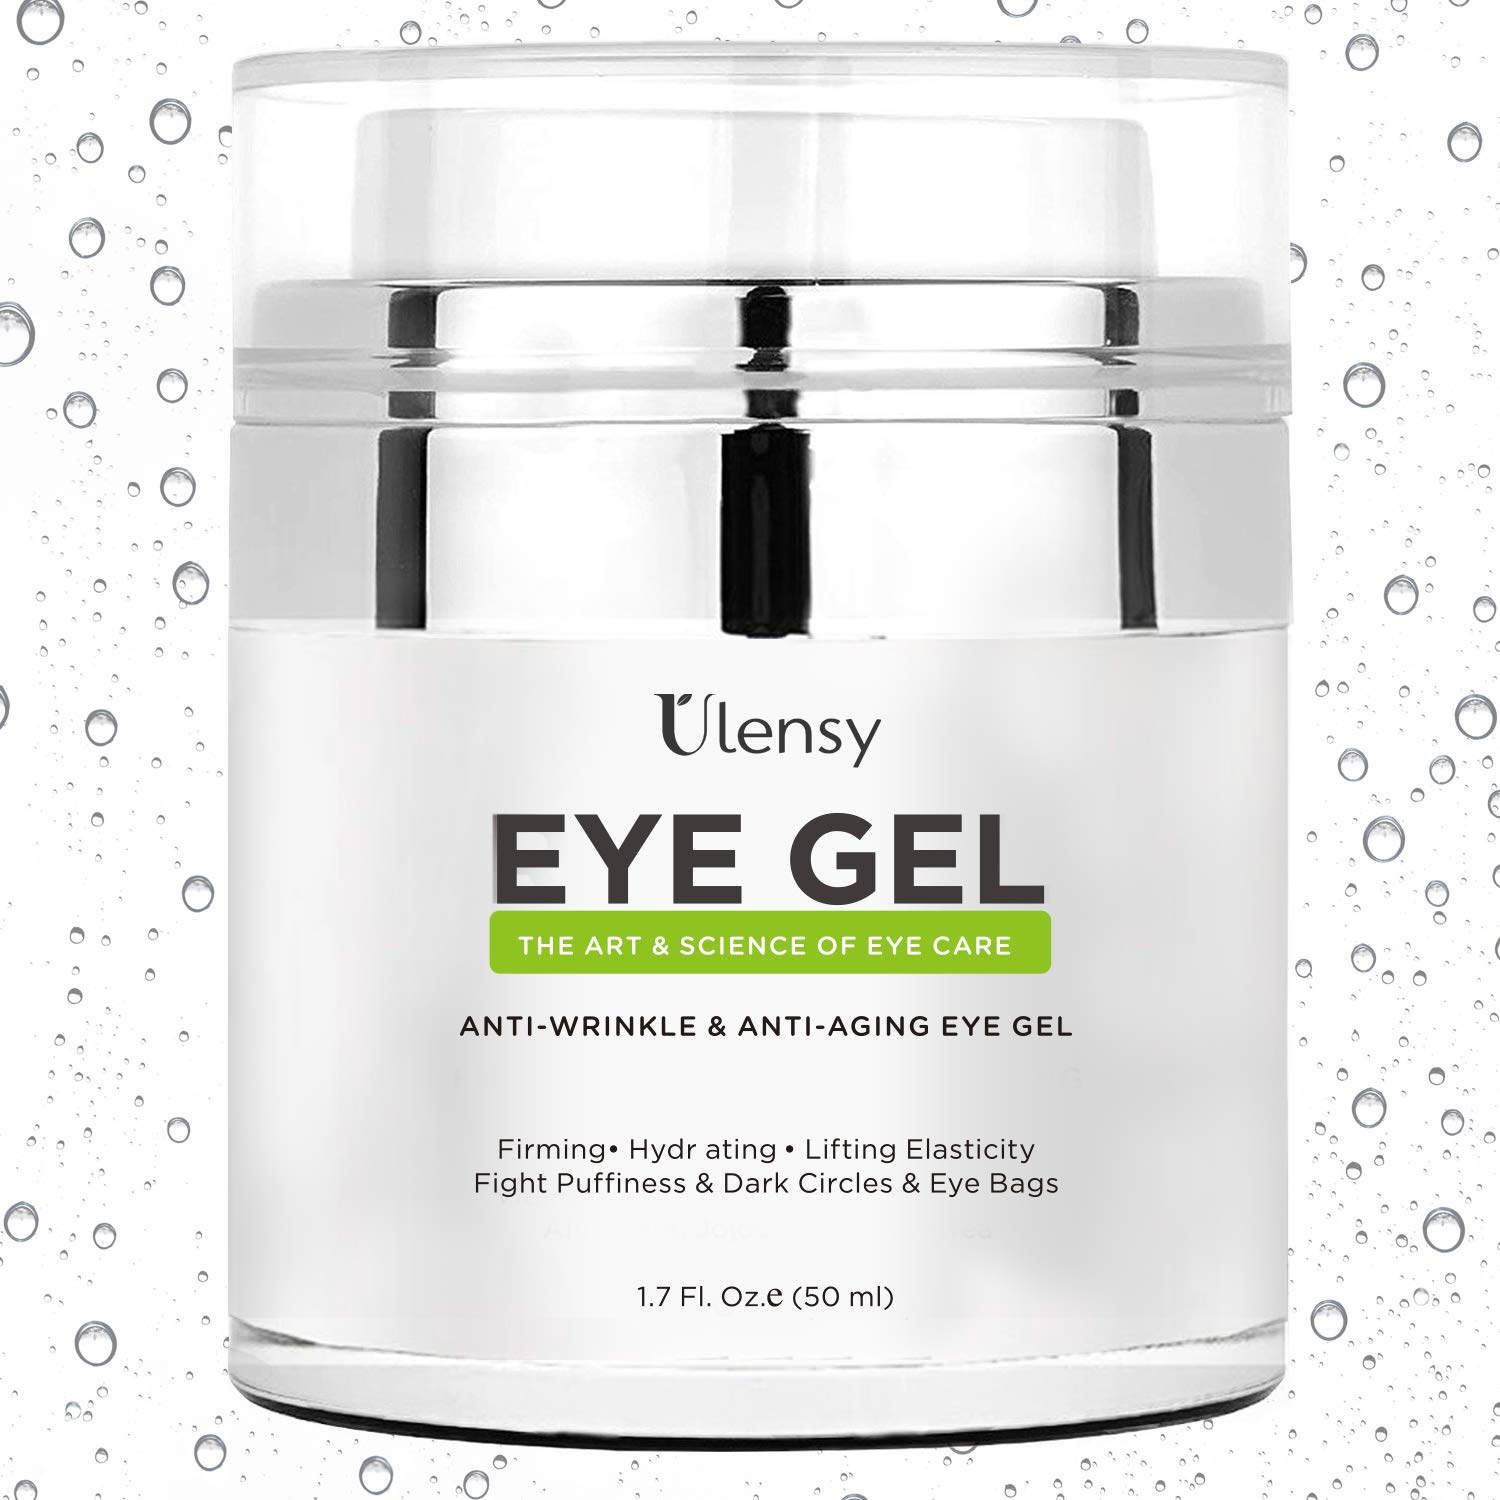 Ulensy Eye Gel Cream, Eye Gel Cream for Dark Circles, the Best Anti-Aging Eye Gel Cream for Eye Care by Ulensy